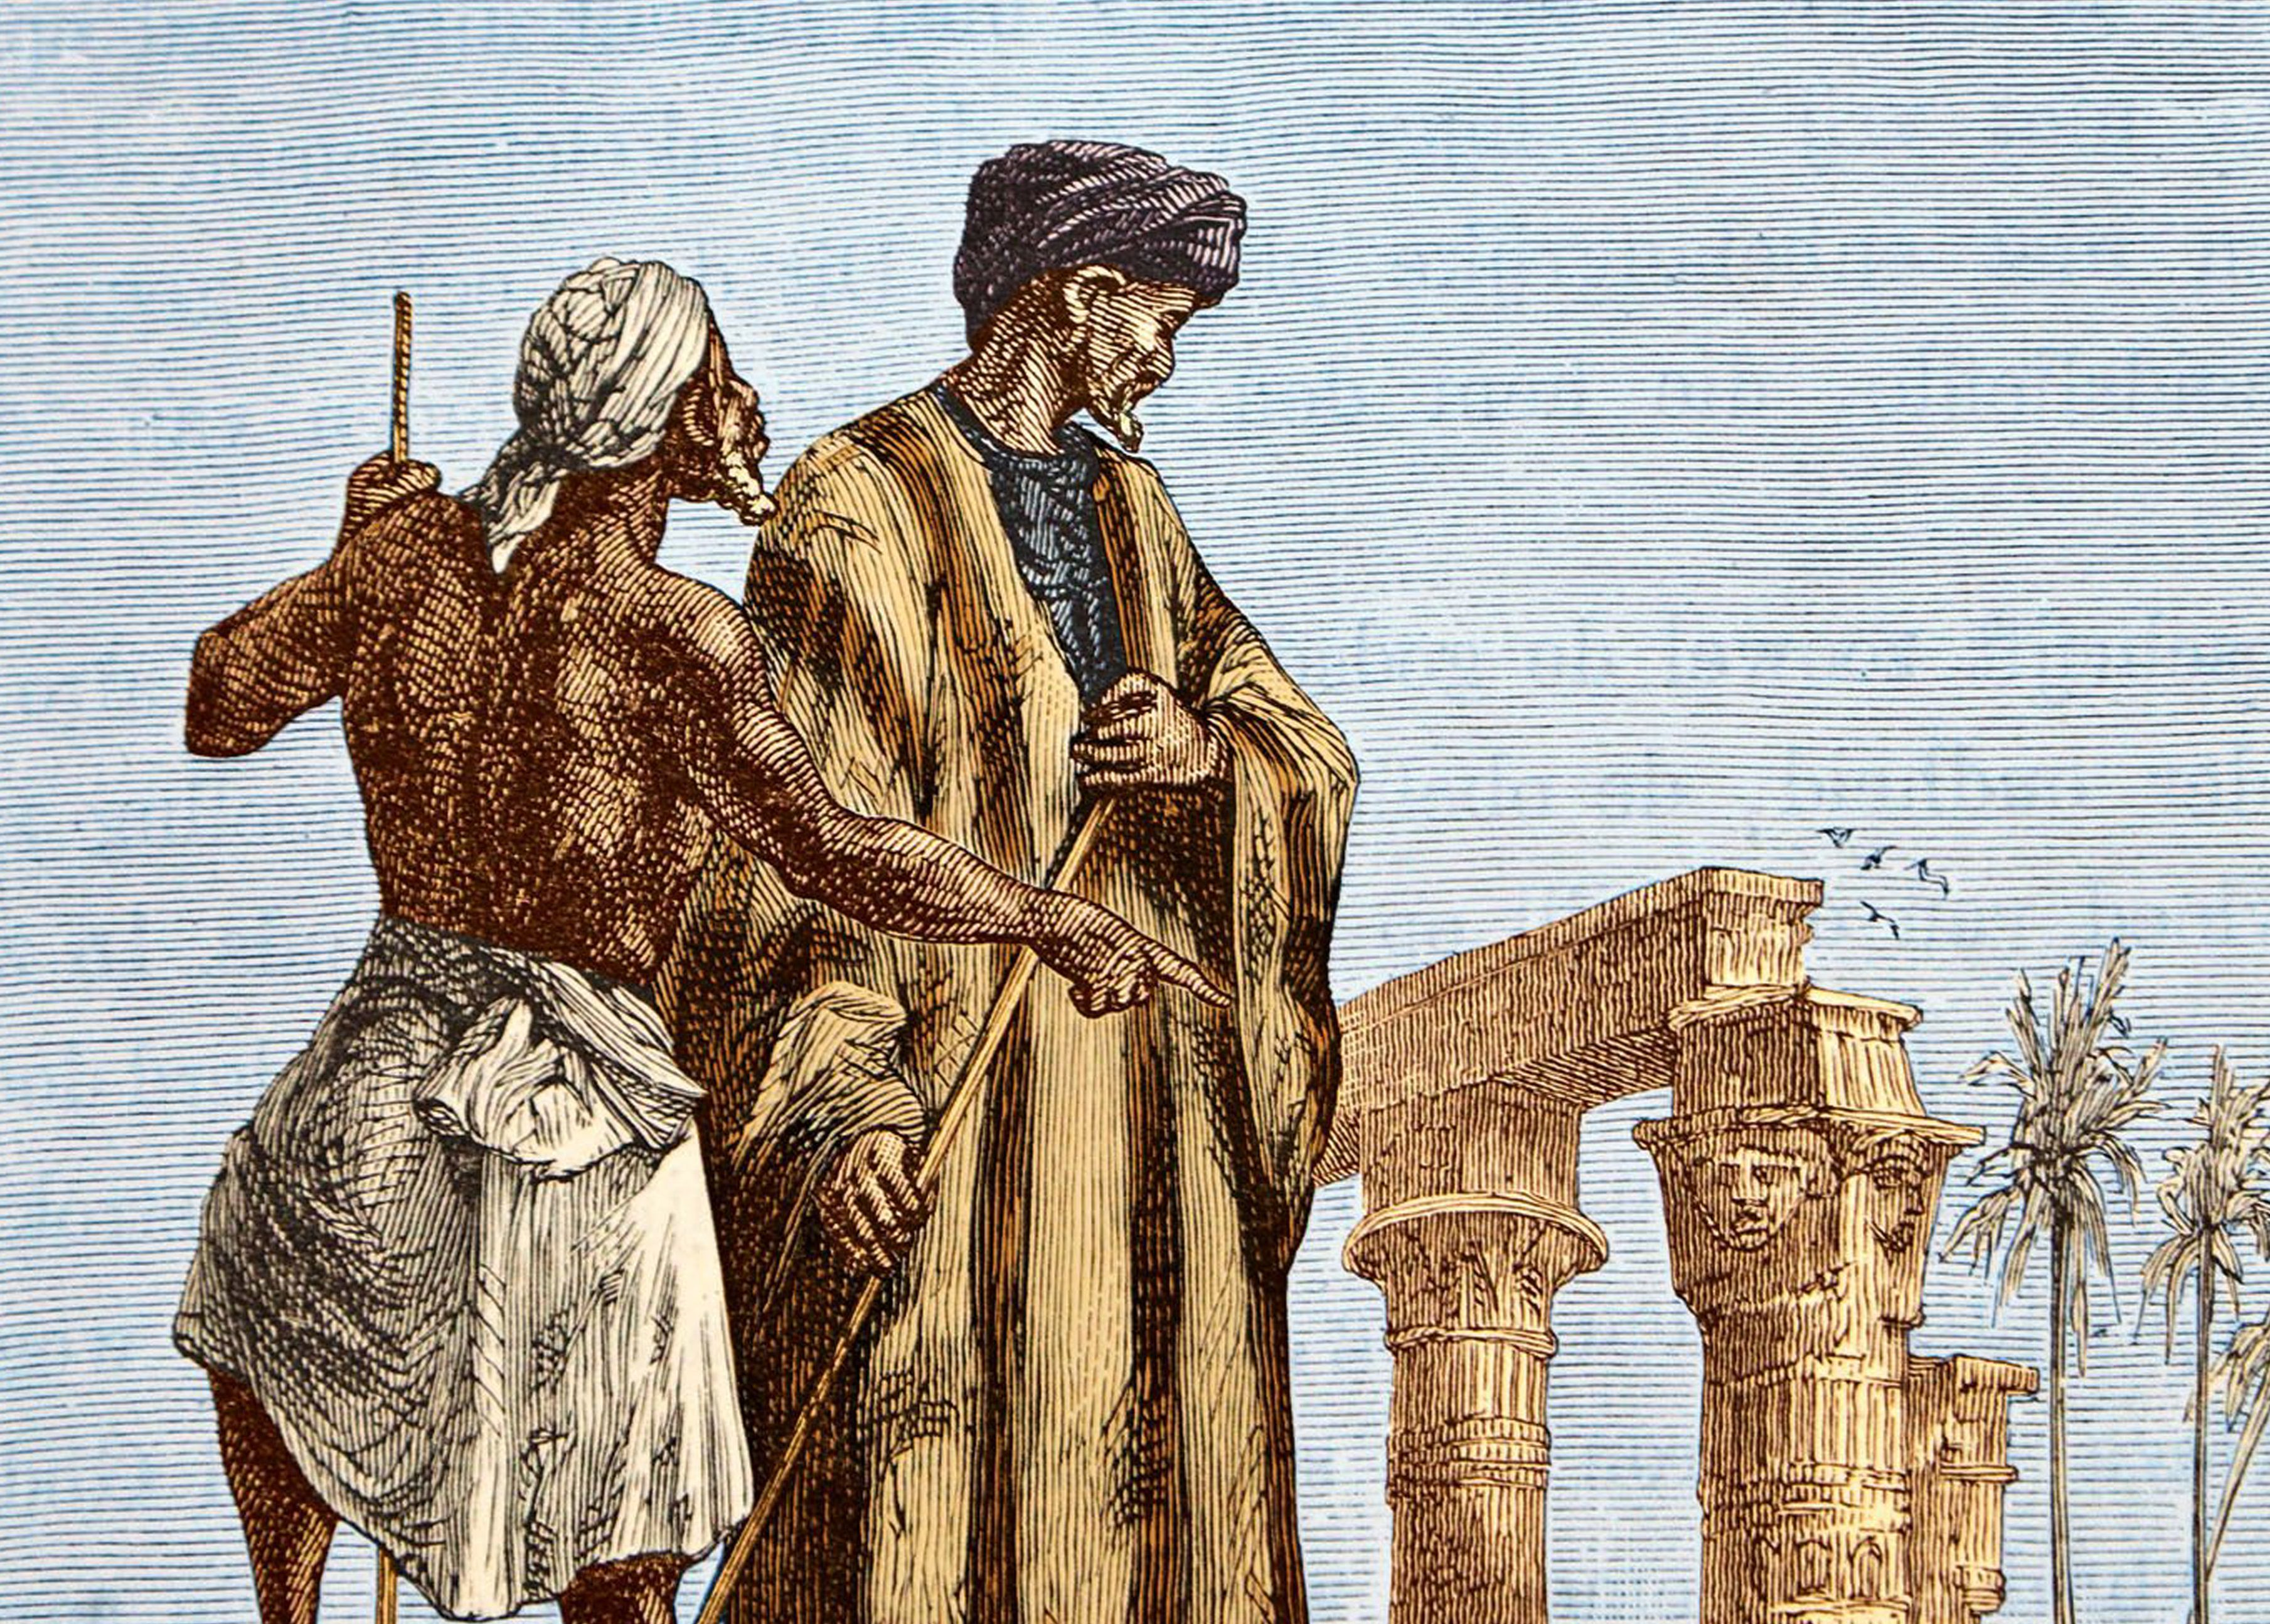 The Life and Travels of Ibn Battuta, World Explorer and Writer